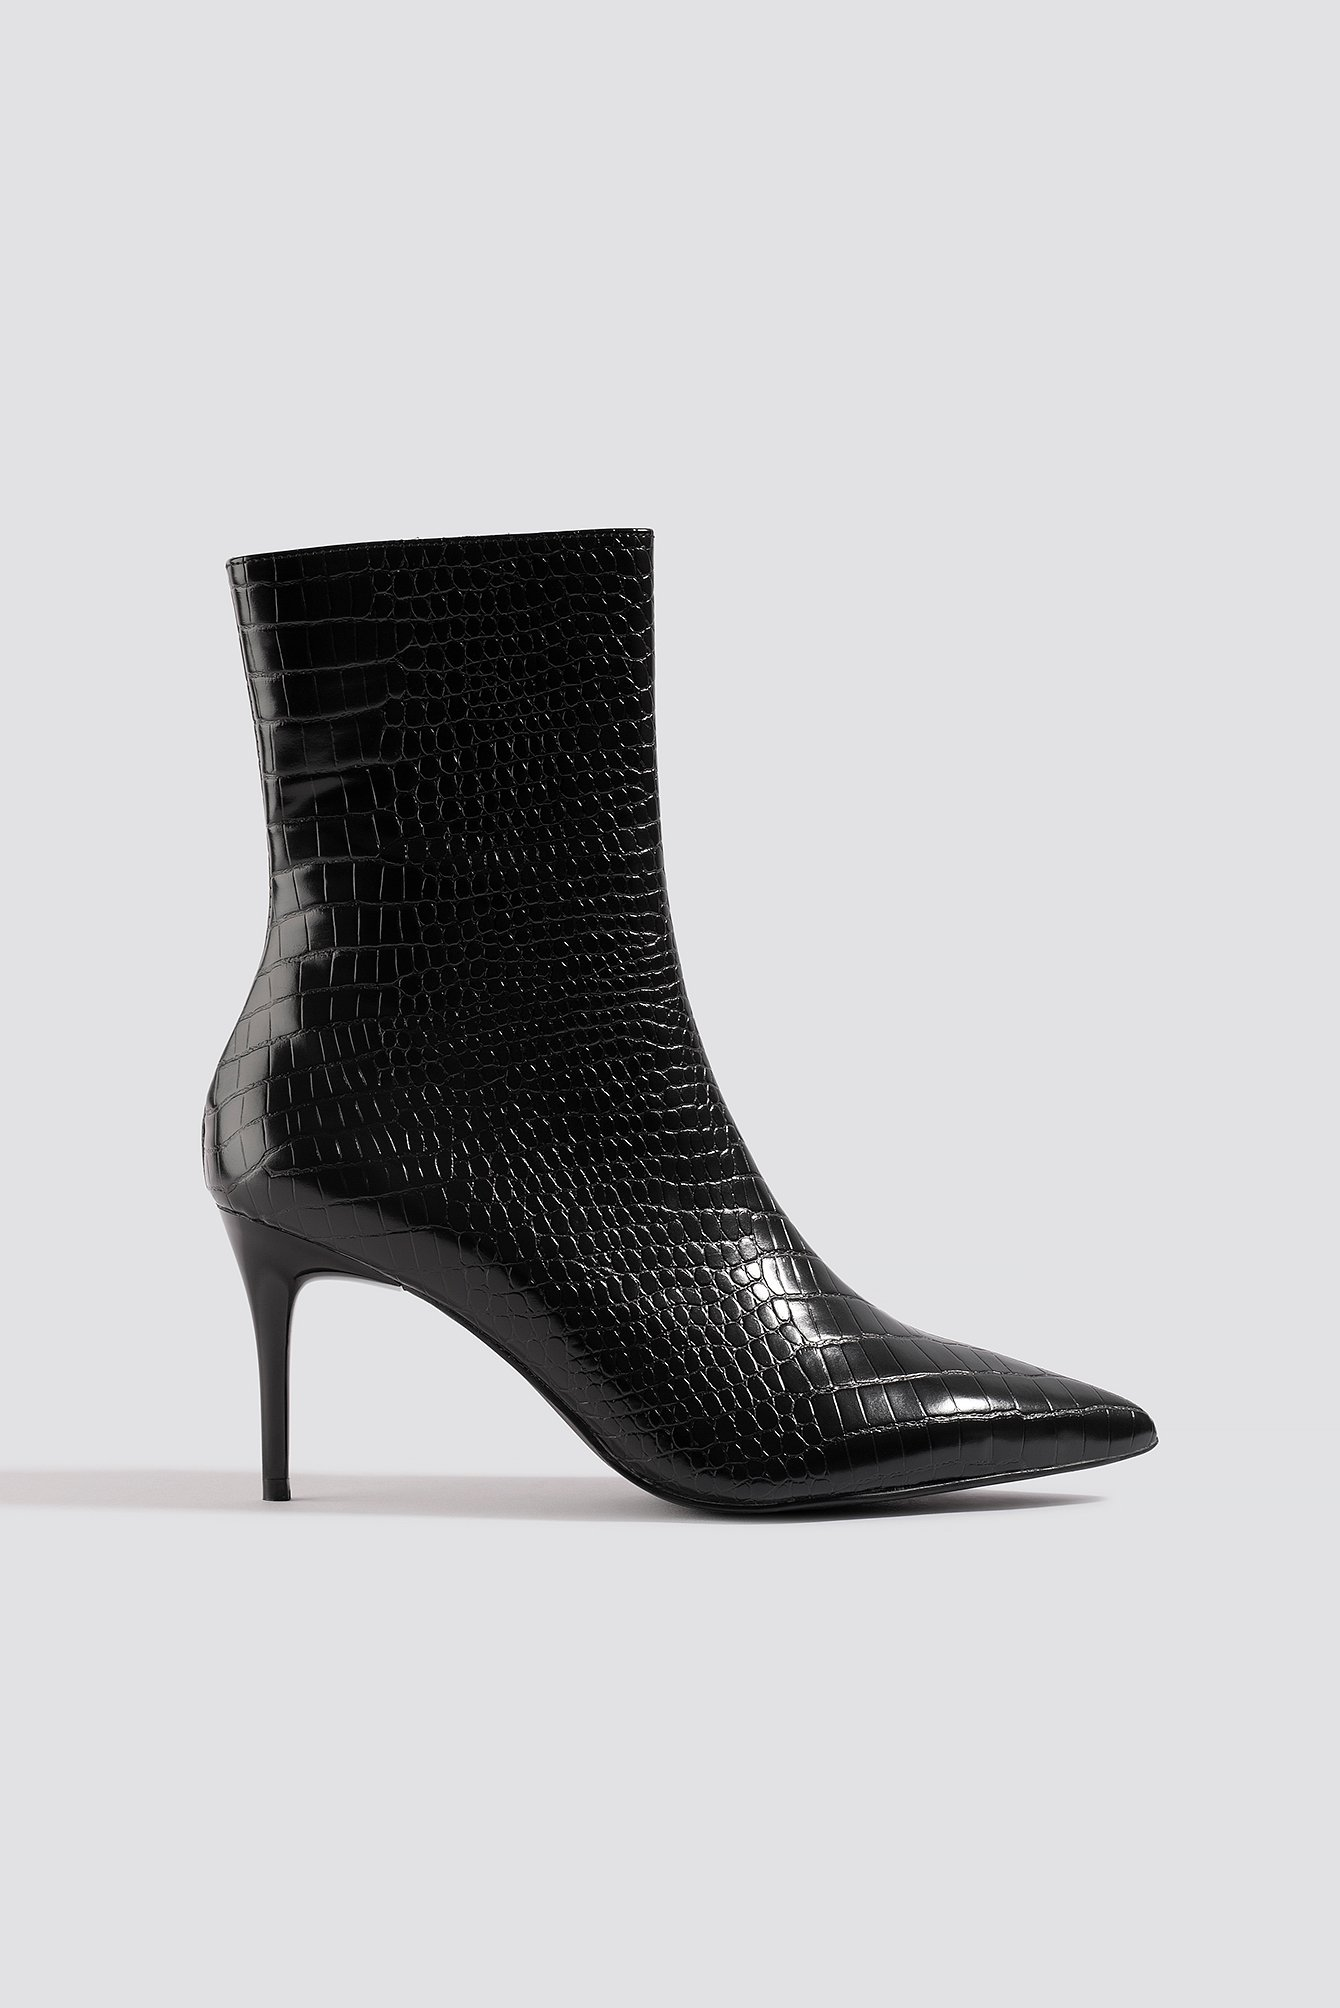 NA-KD Shoes Reptile Pointy Boots - Black | Schuhe > Boots > Sonstige Boots | NA-KD Shoes